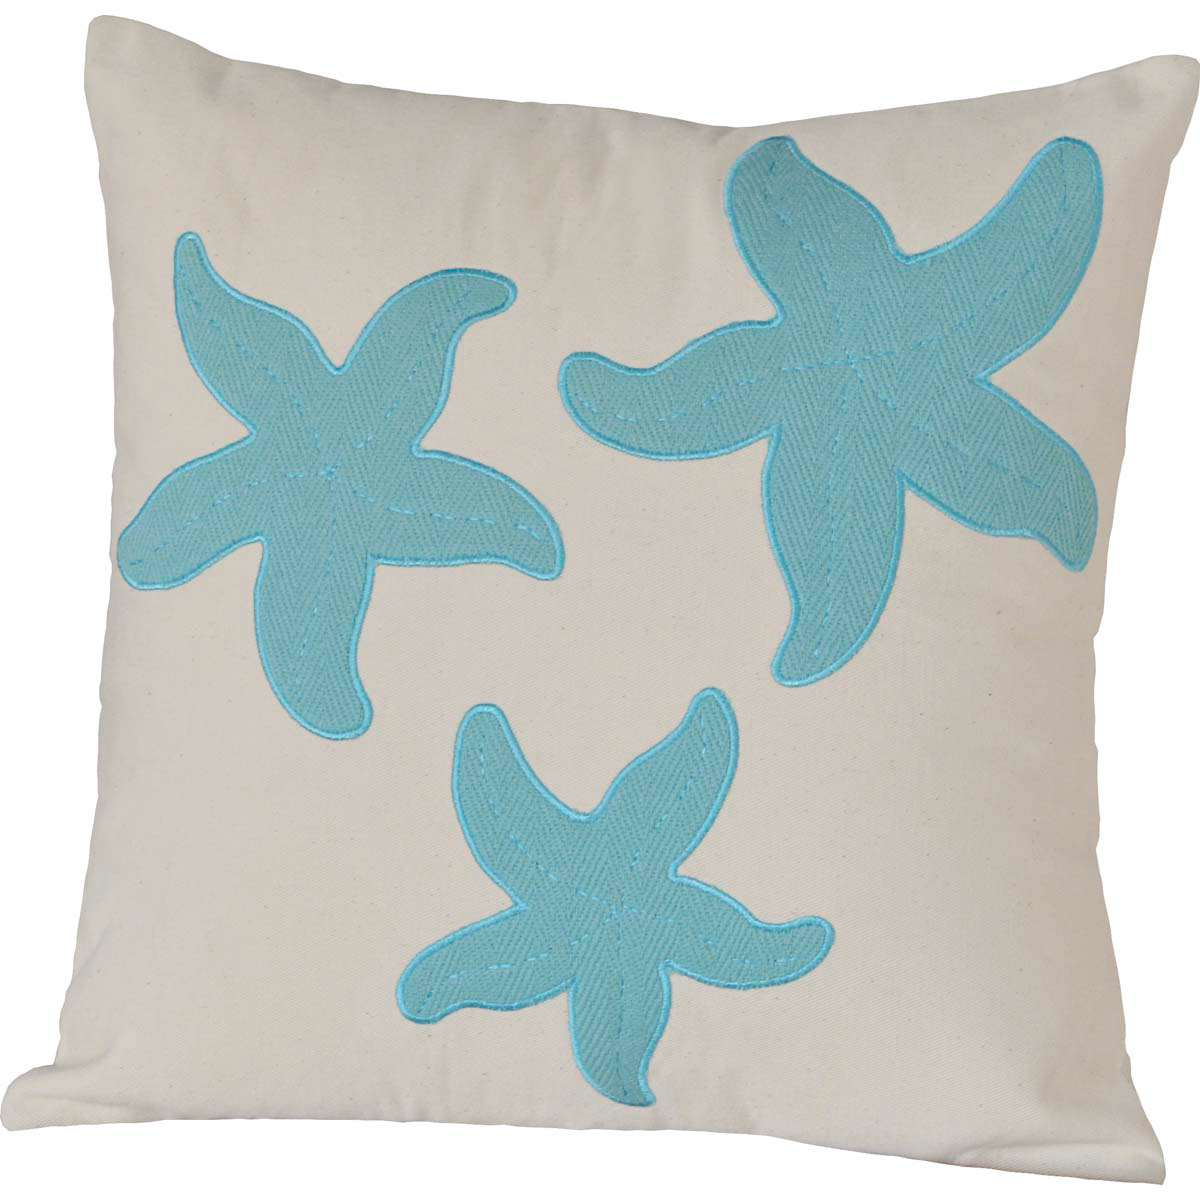 "Three Starfish Pillow - 18""x18"" - VHC Brands - Country Farmhouse"